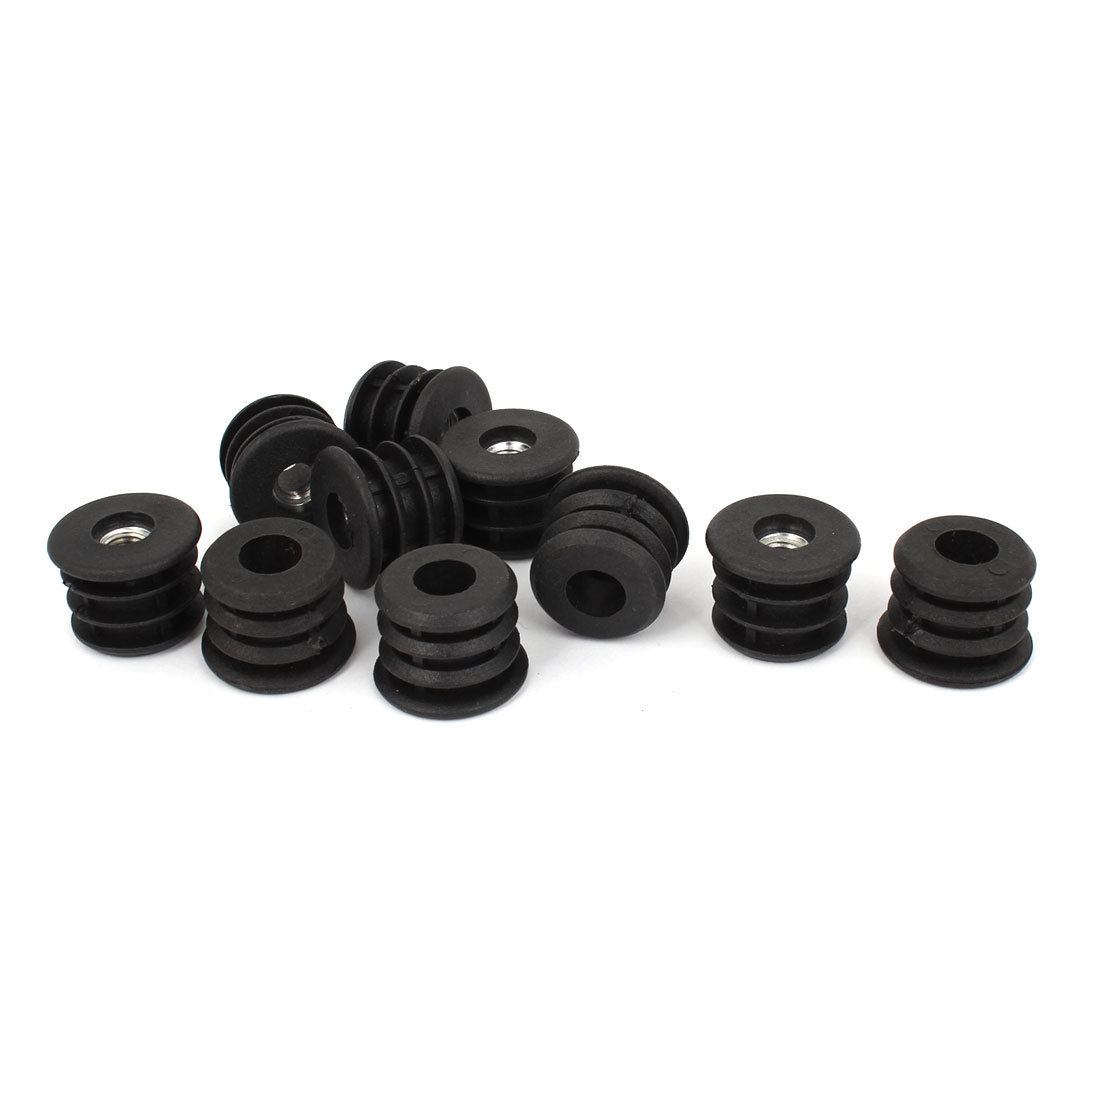 10 Pcs 25mm Dia Plastic Black Blanking End Caps Round Thread Tube Pipe Inserts